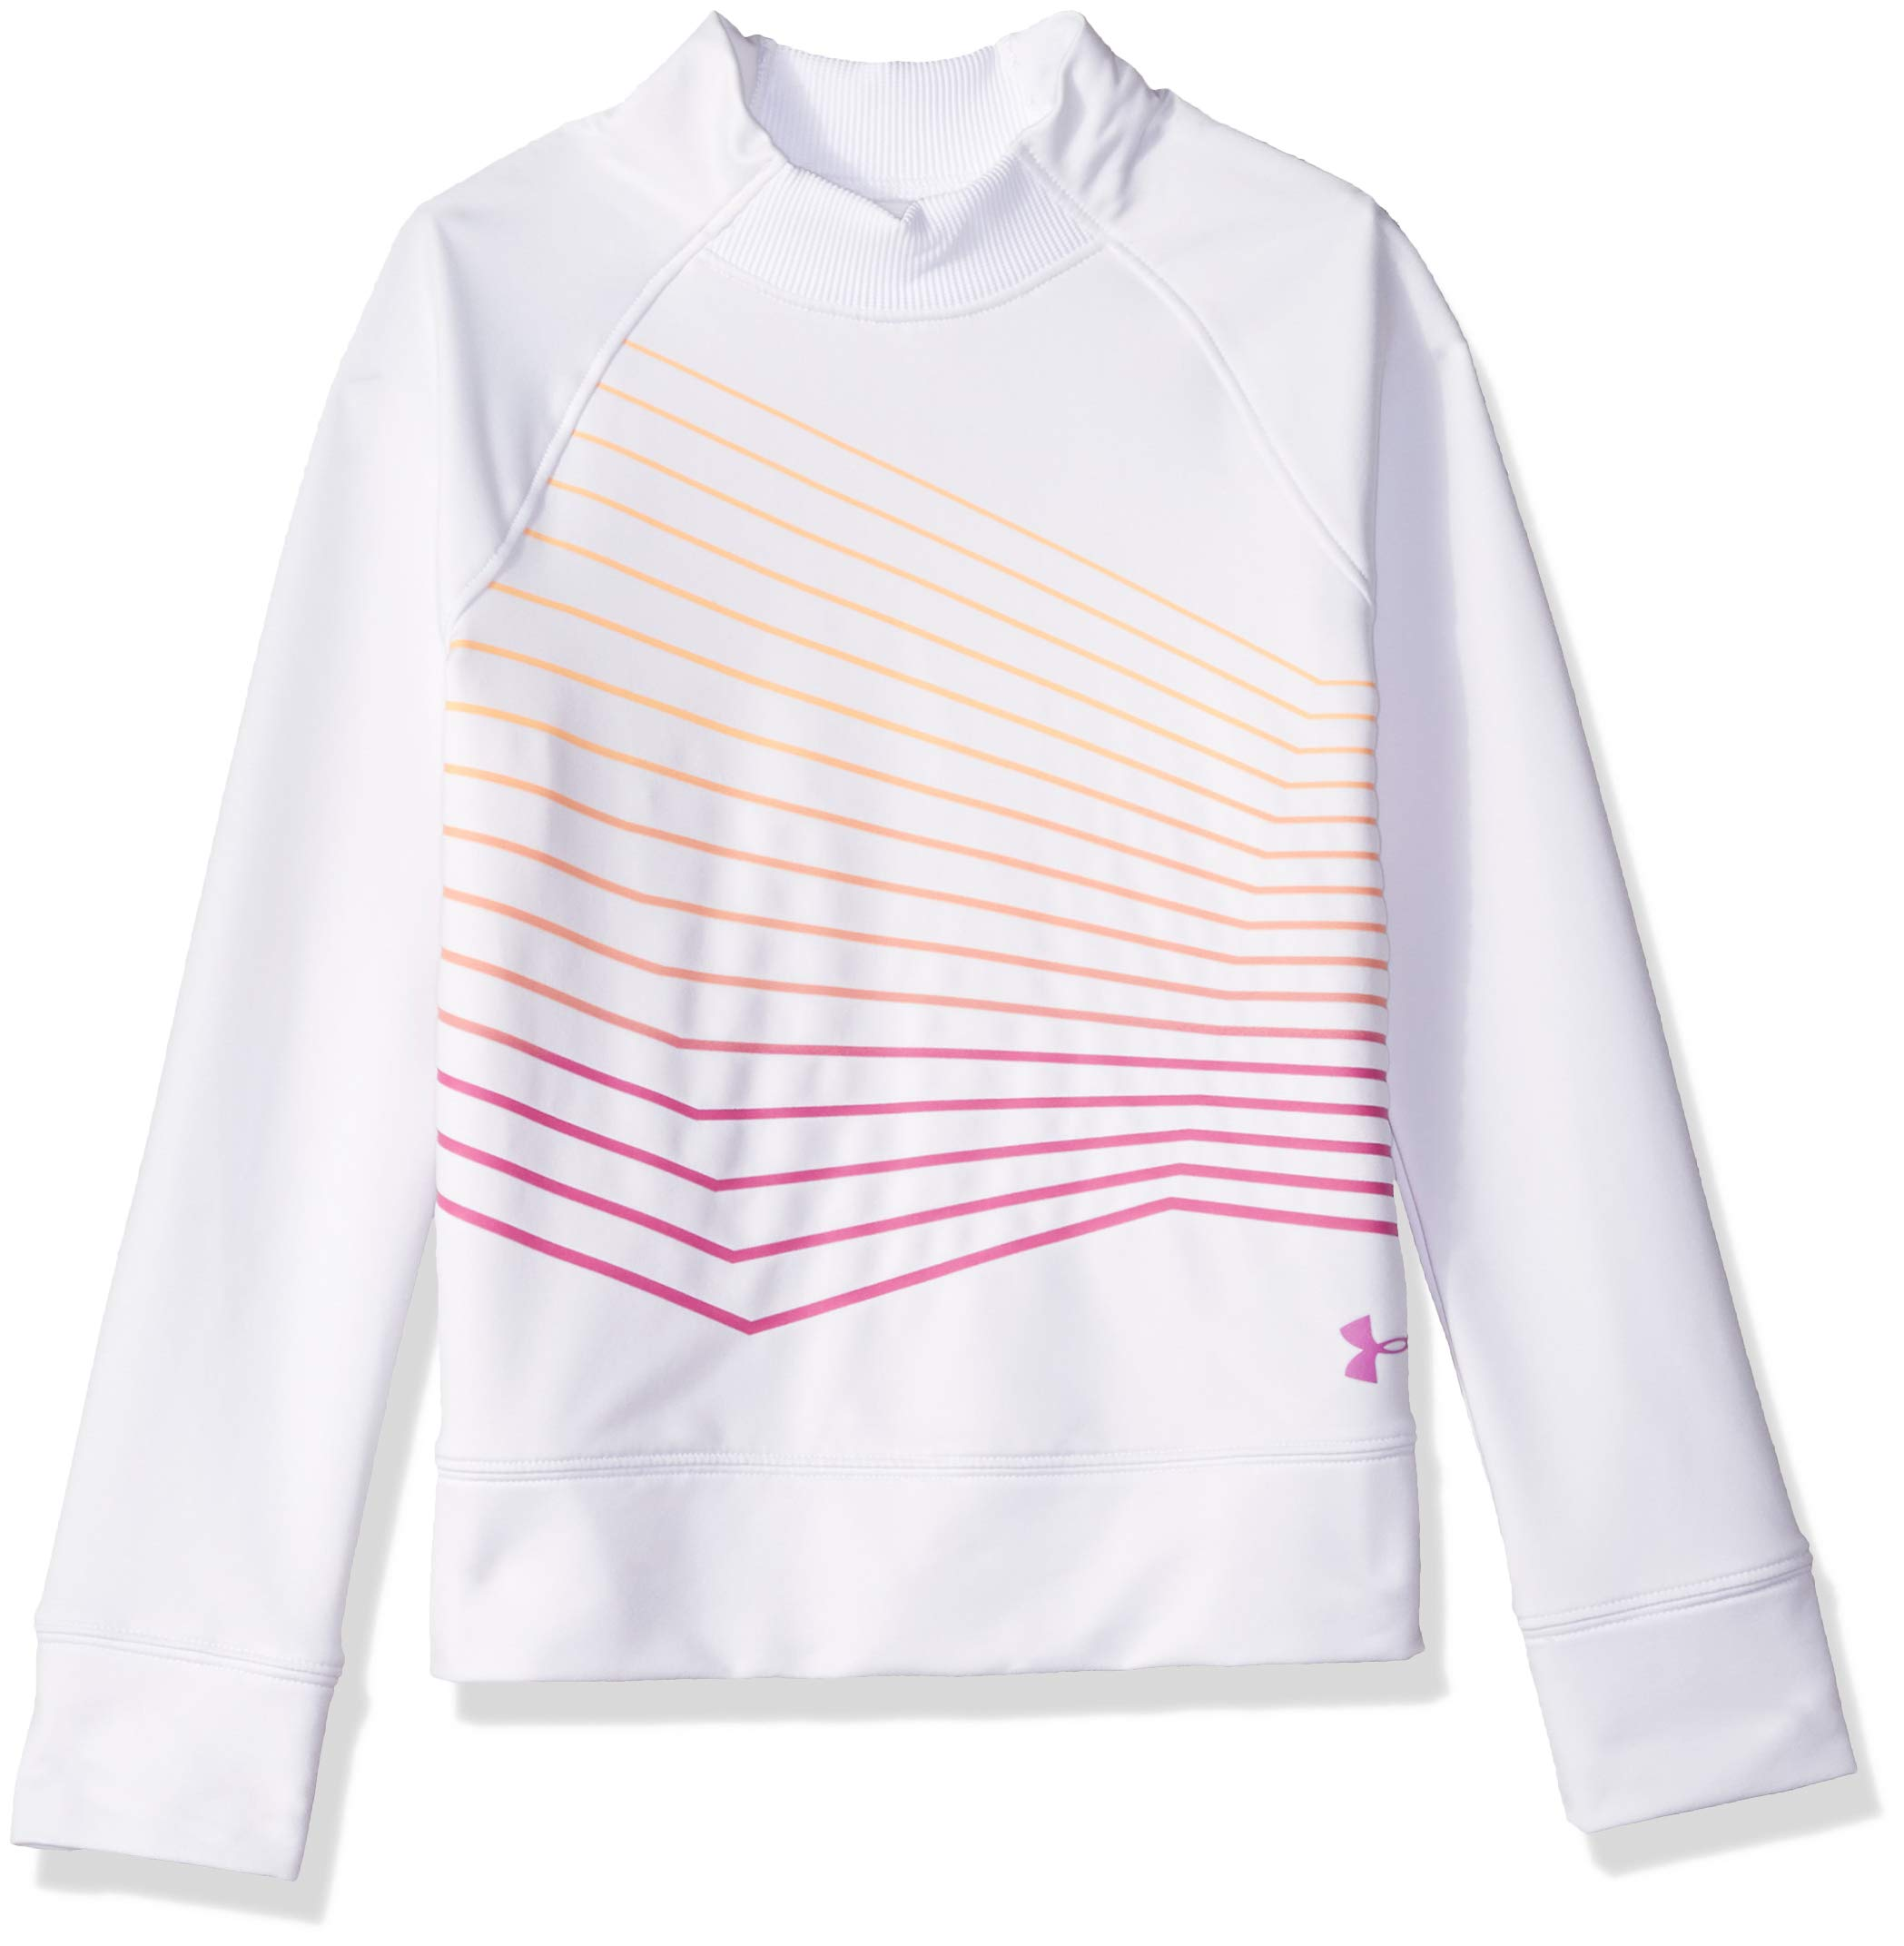 Under Armour Girls Coldgear Mock Long sleeve Sweatshirt, White (100)/Fluo Fuchsia, Youth Large by Under Armour